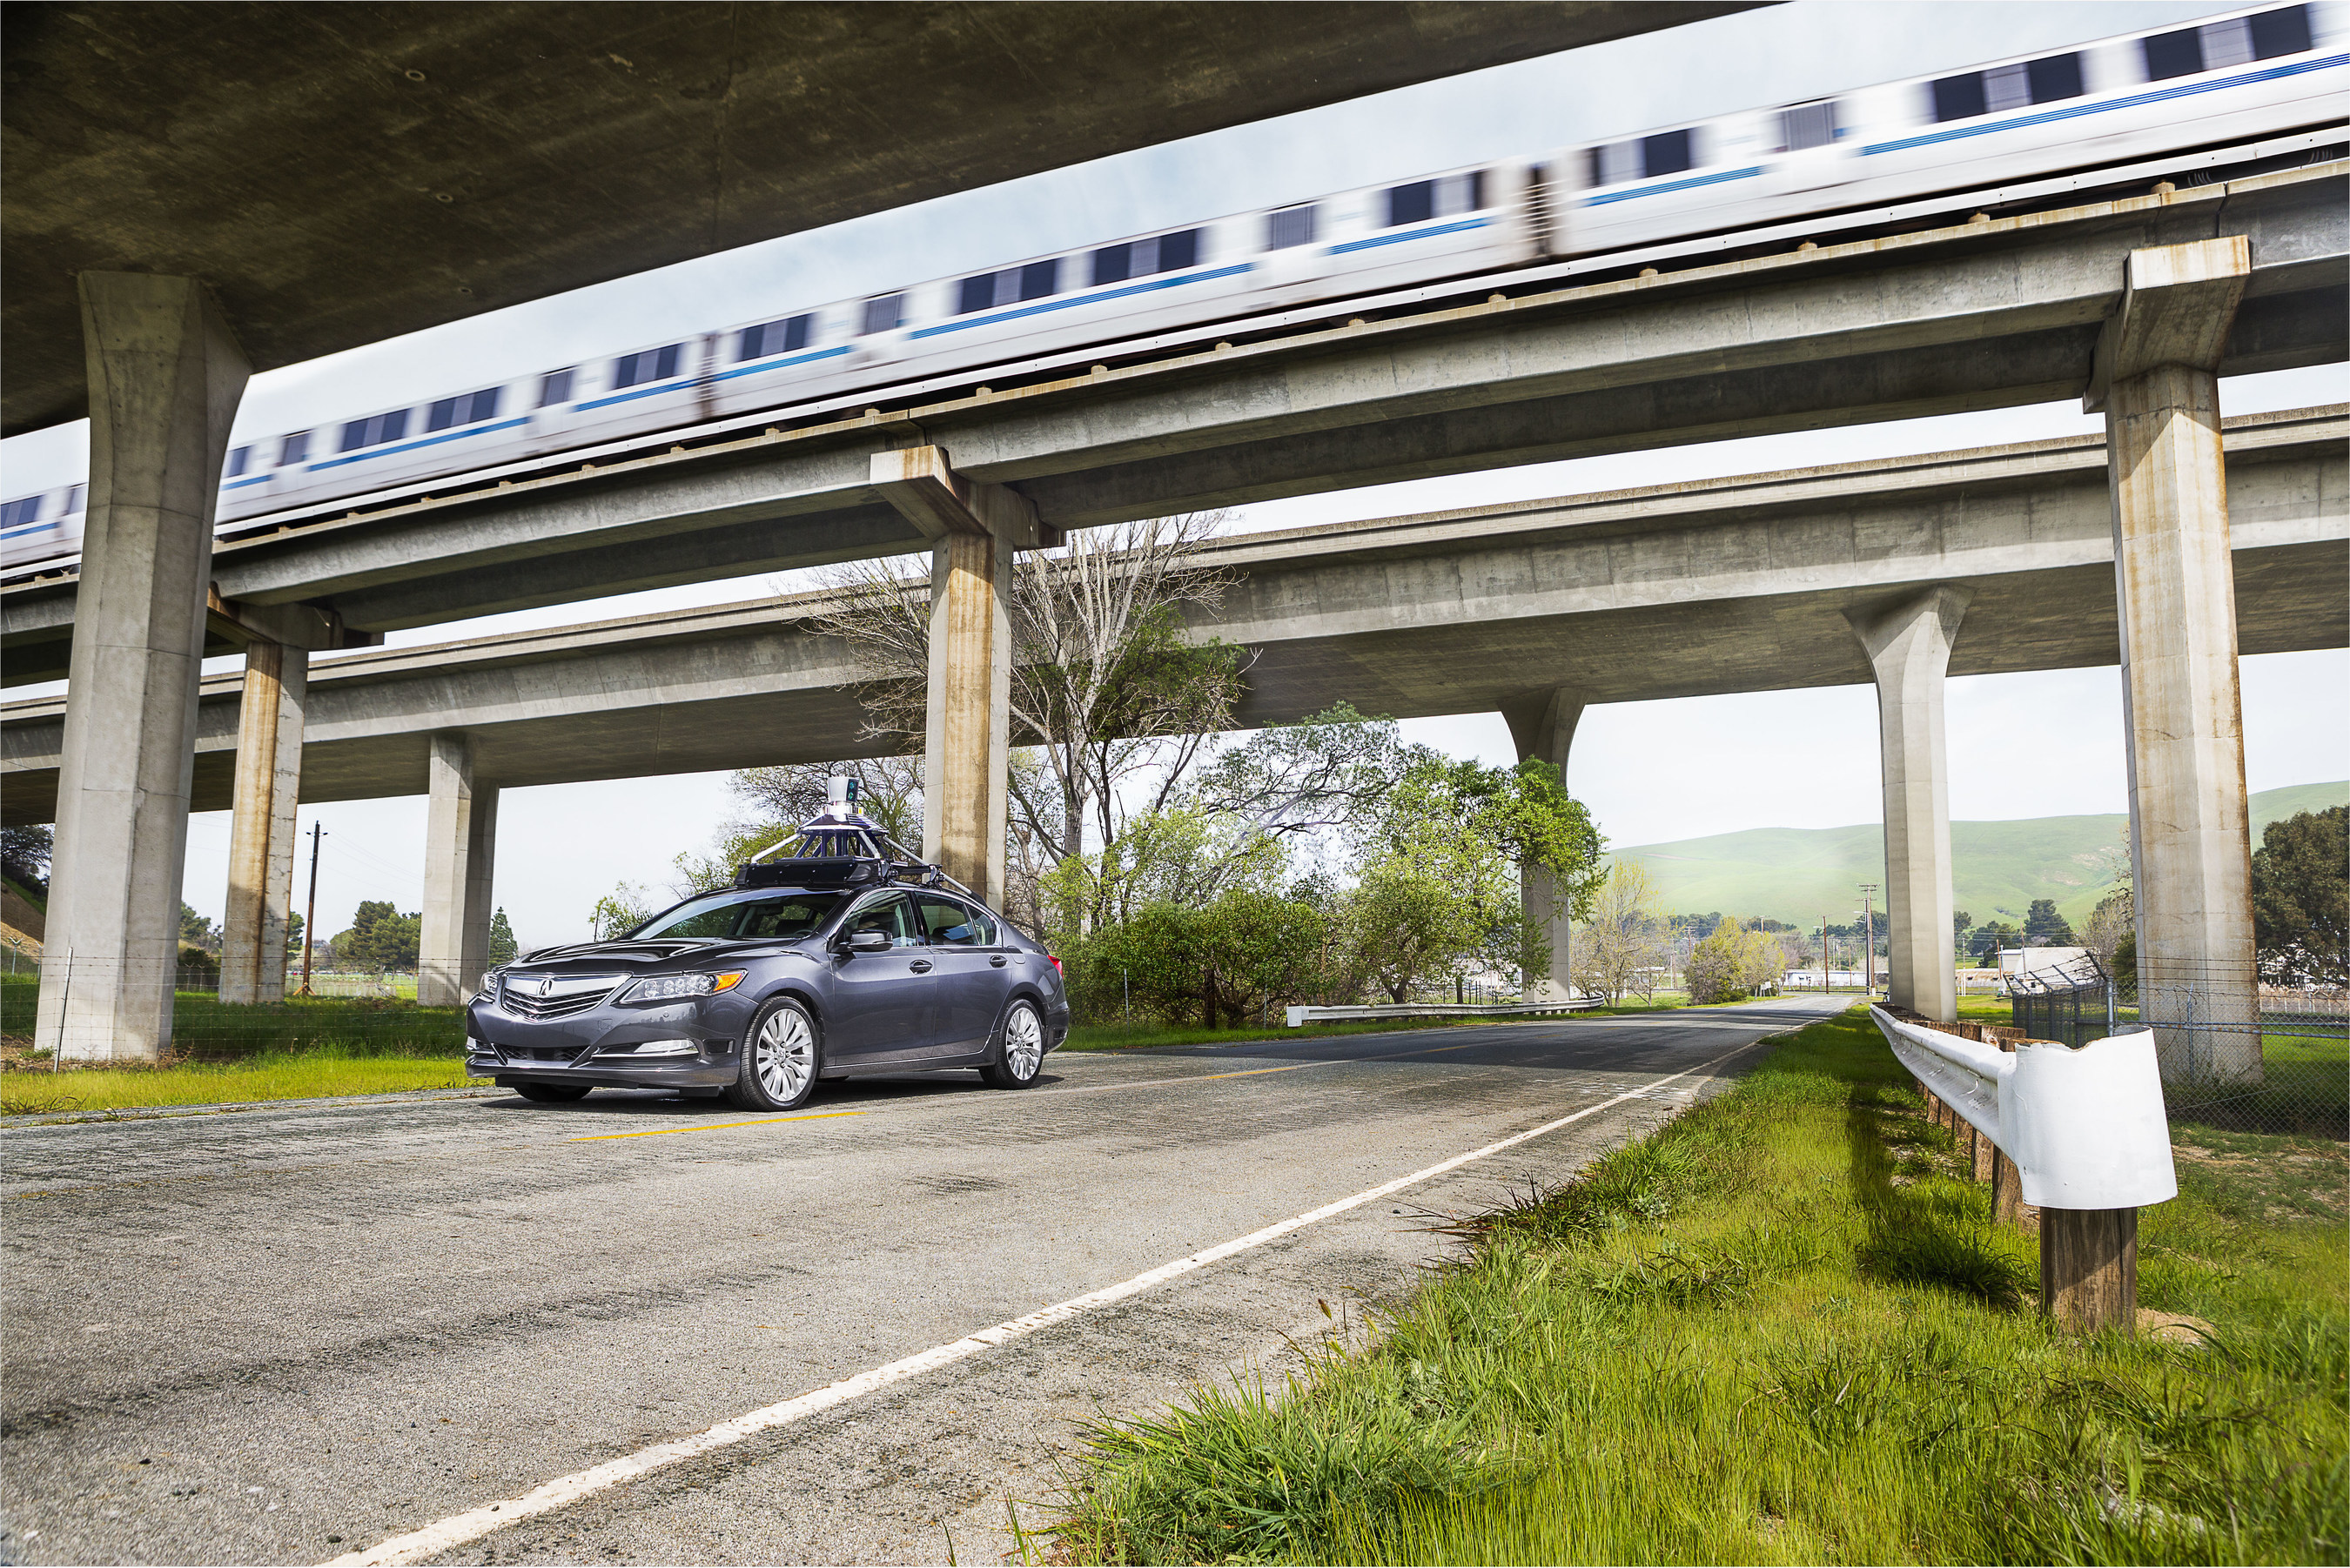 Honda Testing Innovative Automated Vehicle Technology at Bay Area Navy Base